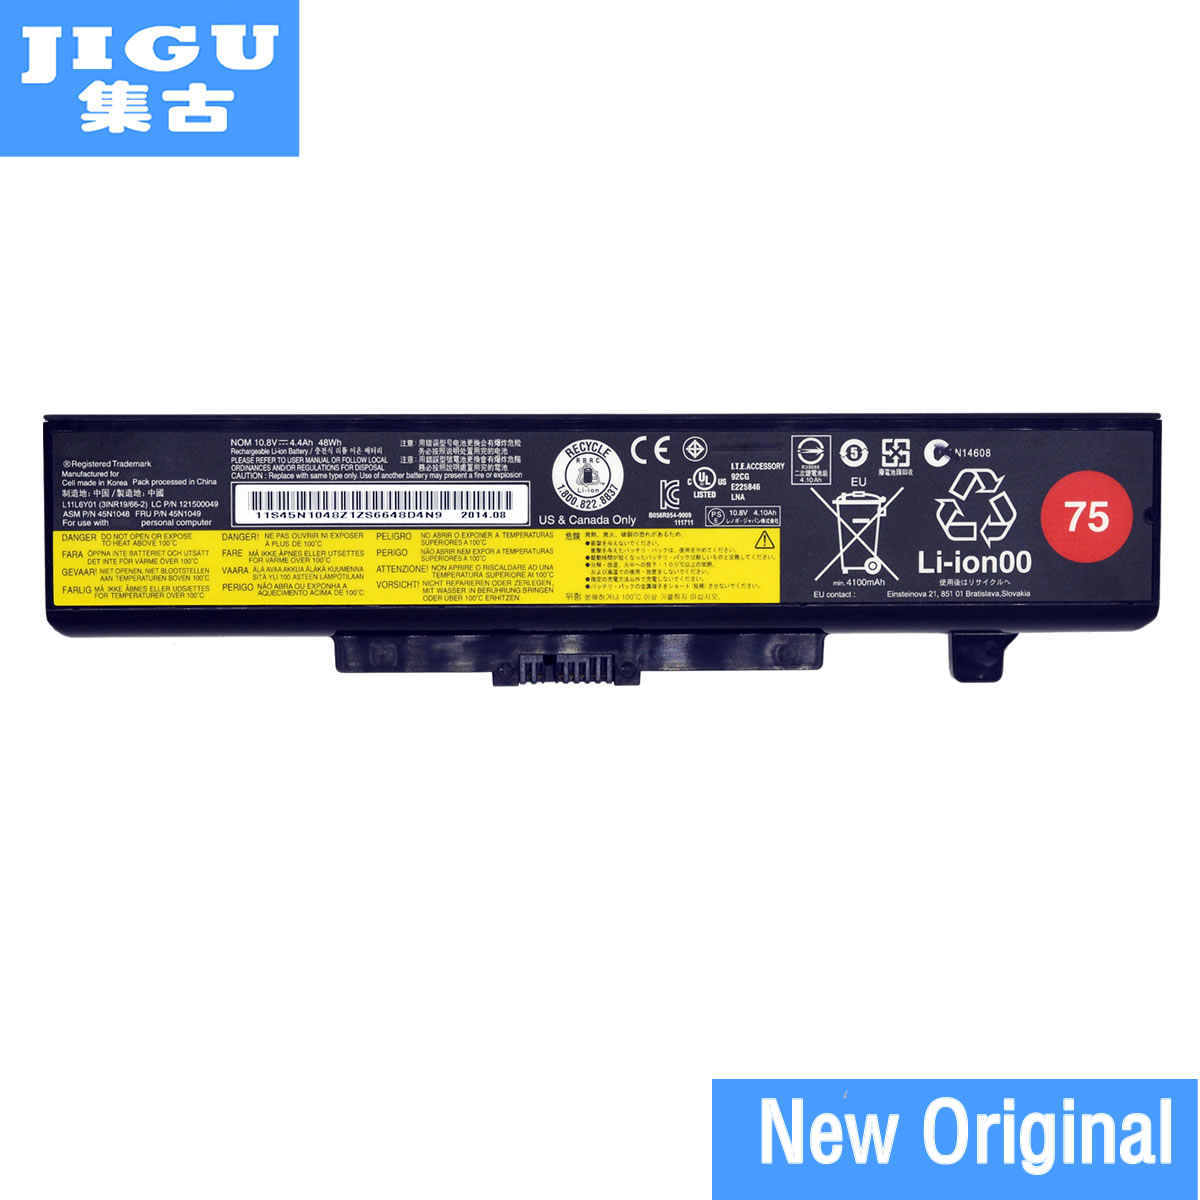 JIGU Original battery for lenovo for IdeaPad y485p Y480 B590 G710 N581 G700 P585 B490 Series for ThinkPad E540 E440 E531 E431JIGU Original battery for lenovo for IdeaPad y485p Y480 B590 G710 N581 G700 P585 B490 Series for ThinkPad E540 E440 E531 E431